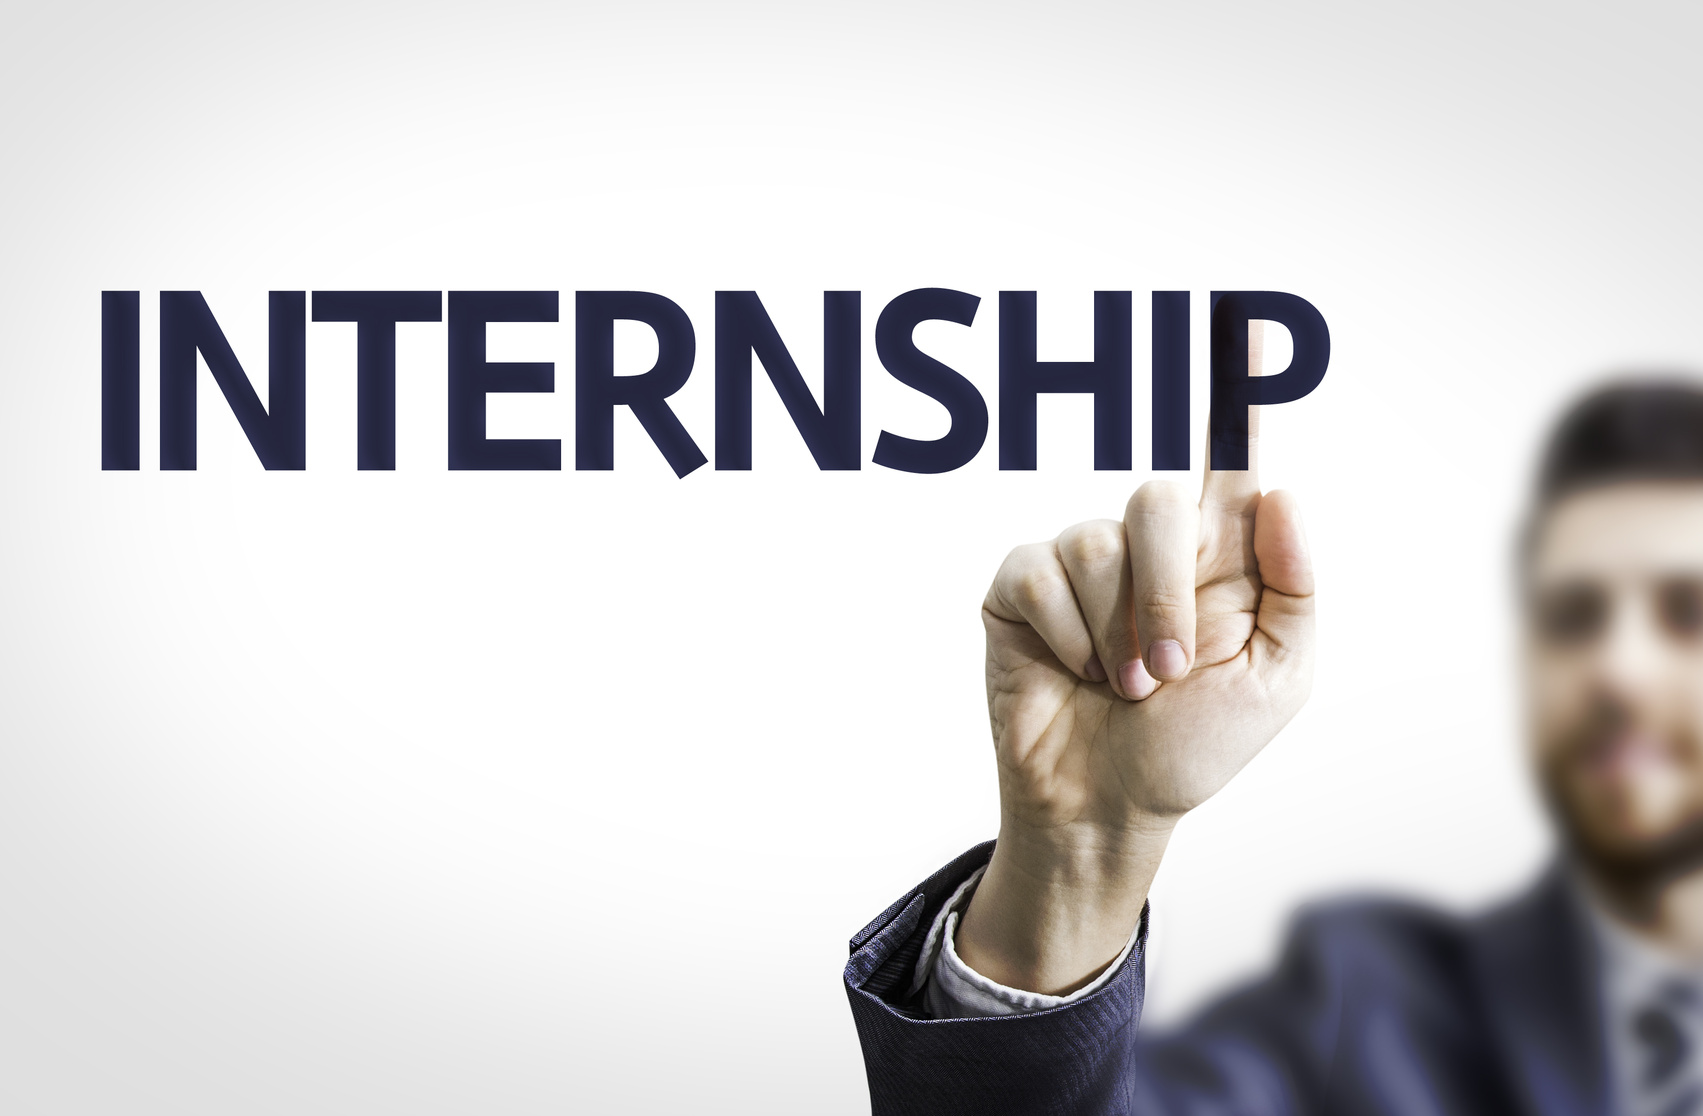 foster care to success 6 ways to search for a summer internship